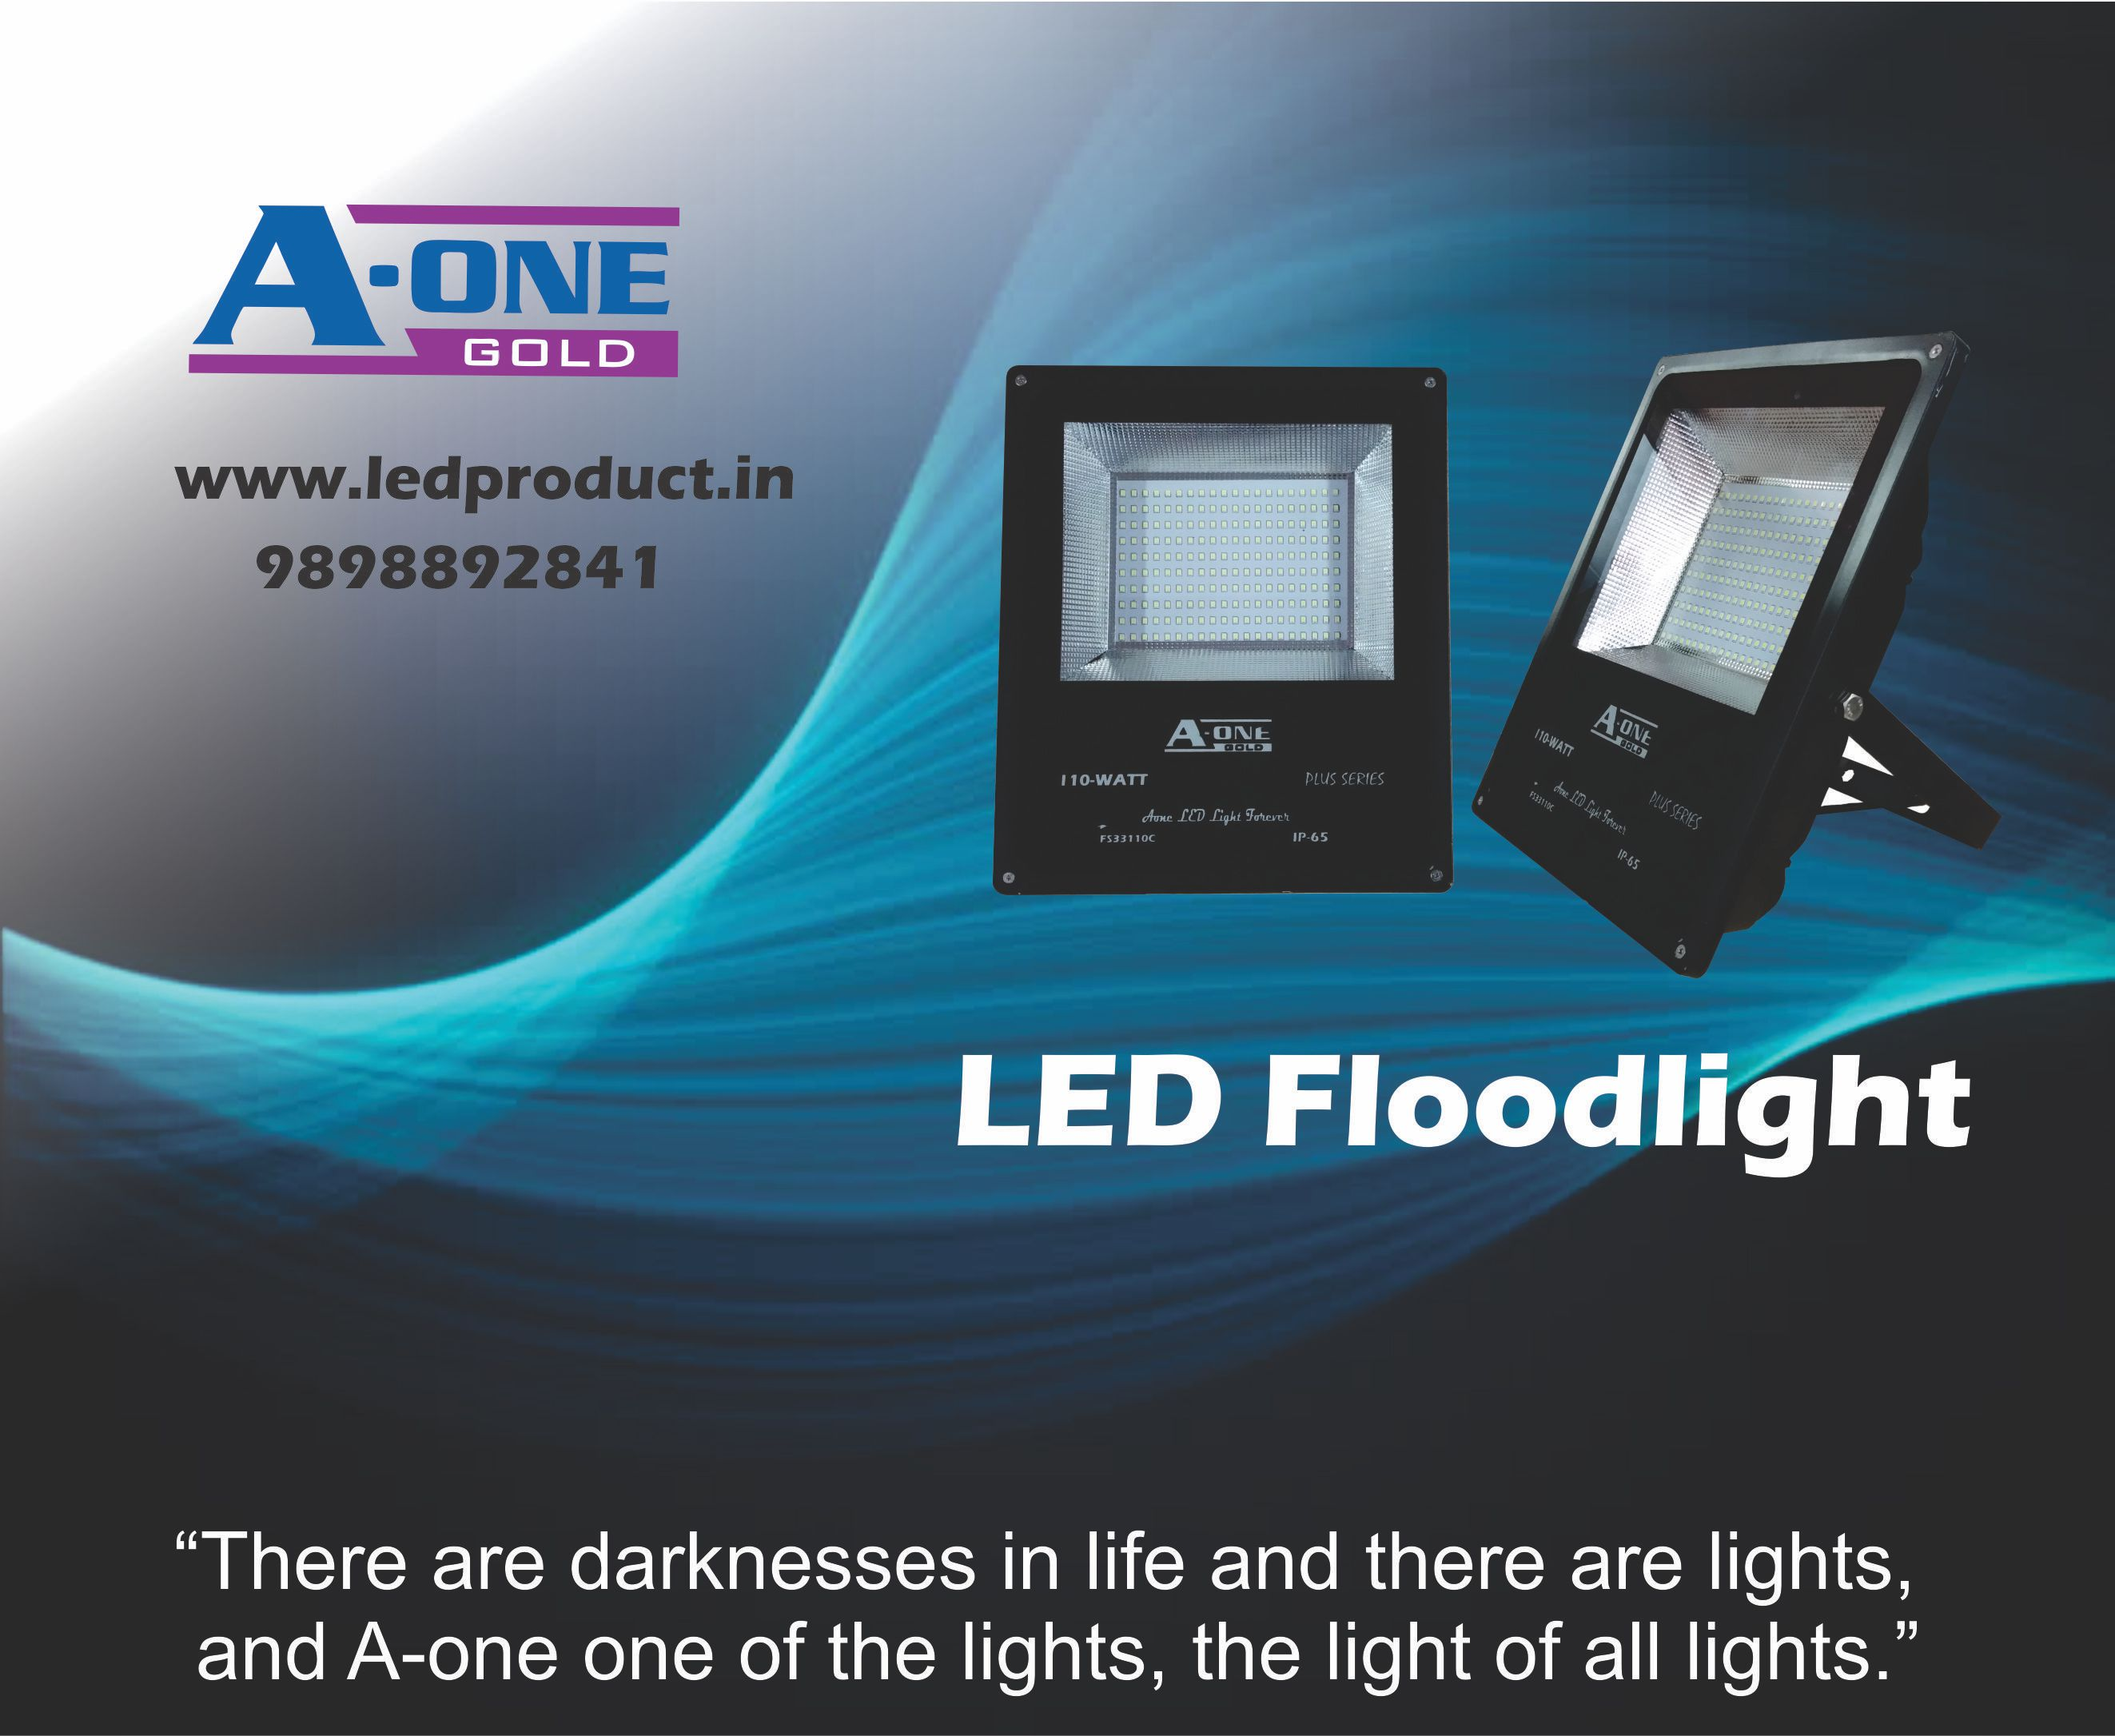 A-one LED floodlights can be defined as high-   OM LED SOLUTION